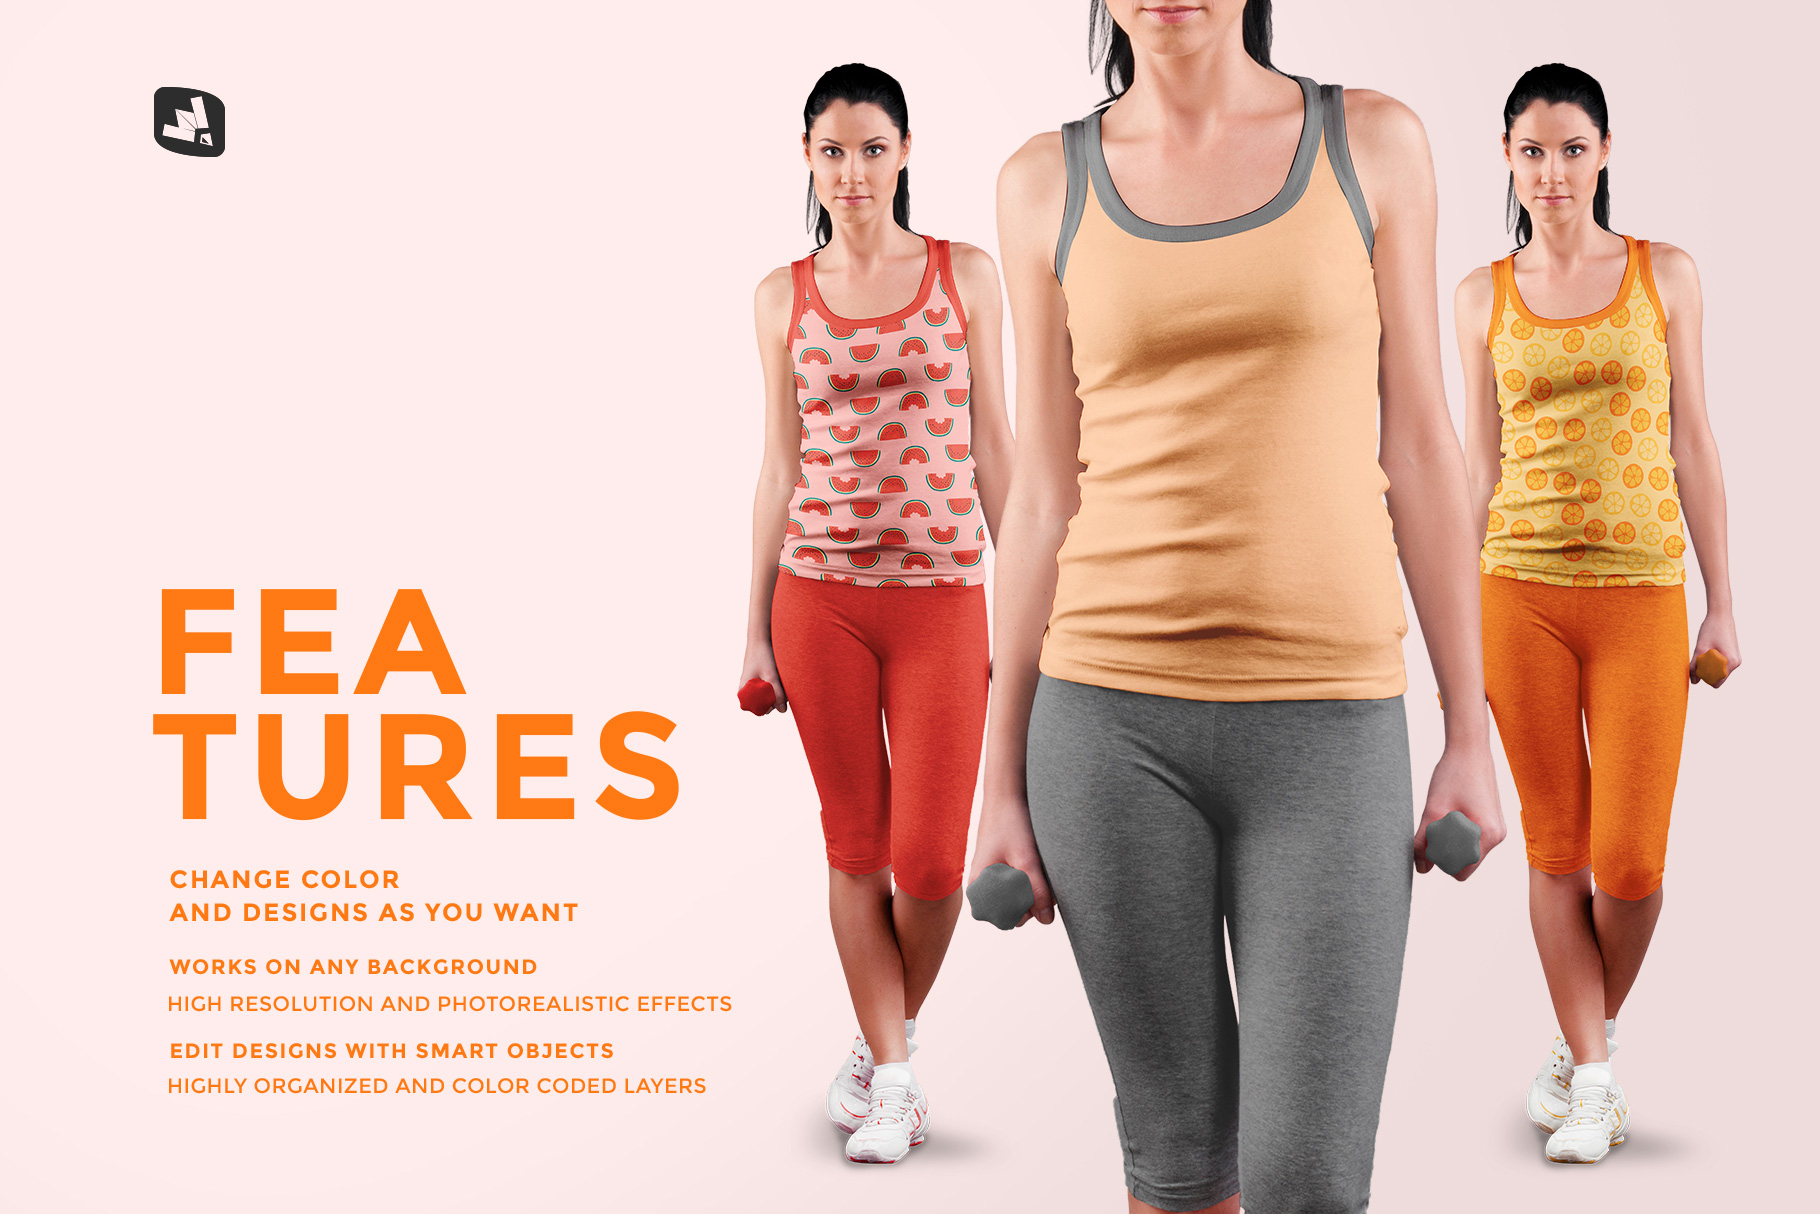 features of the female sleeveless gym outfit mockup